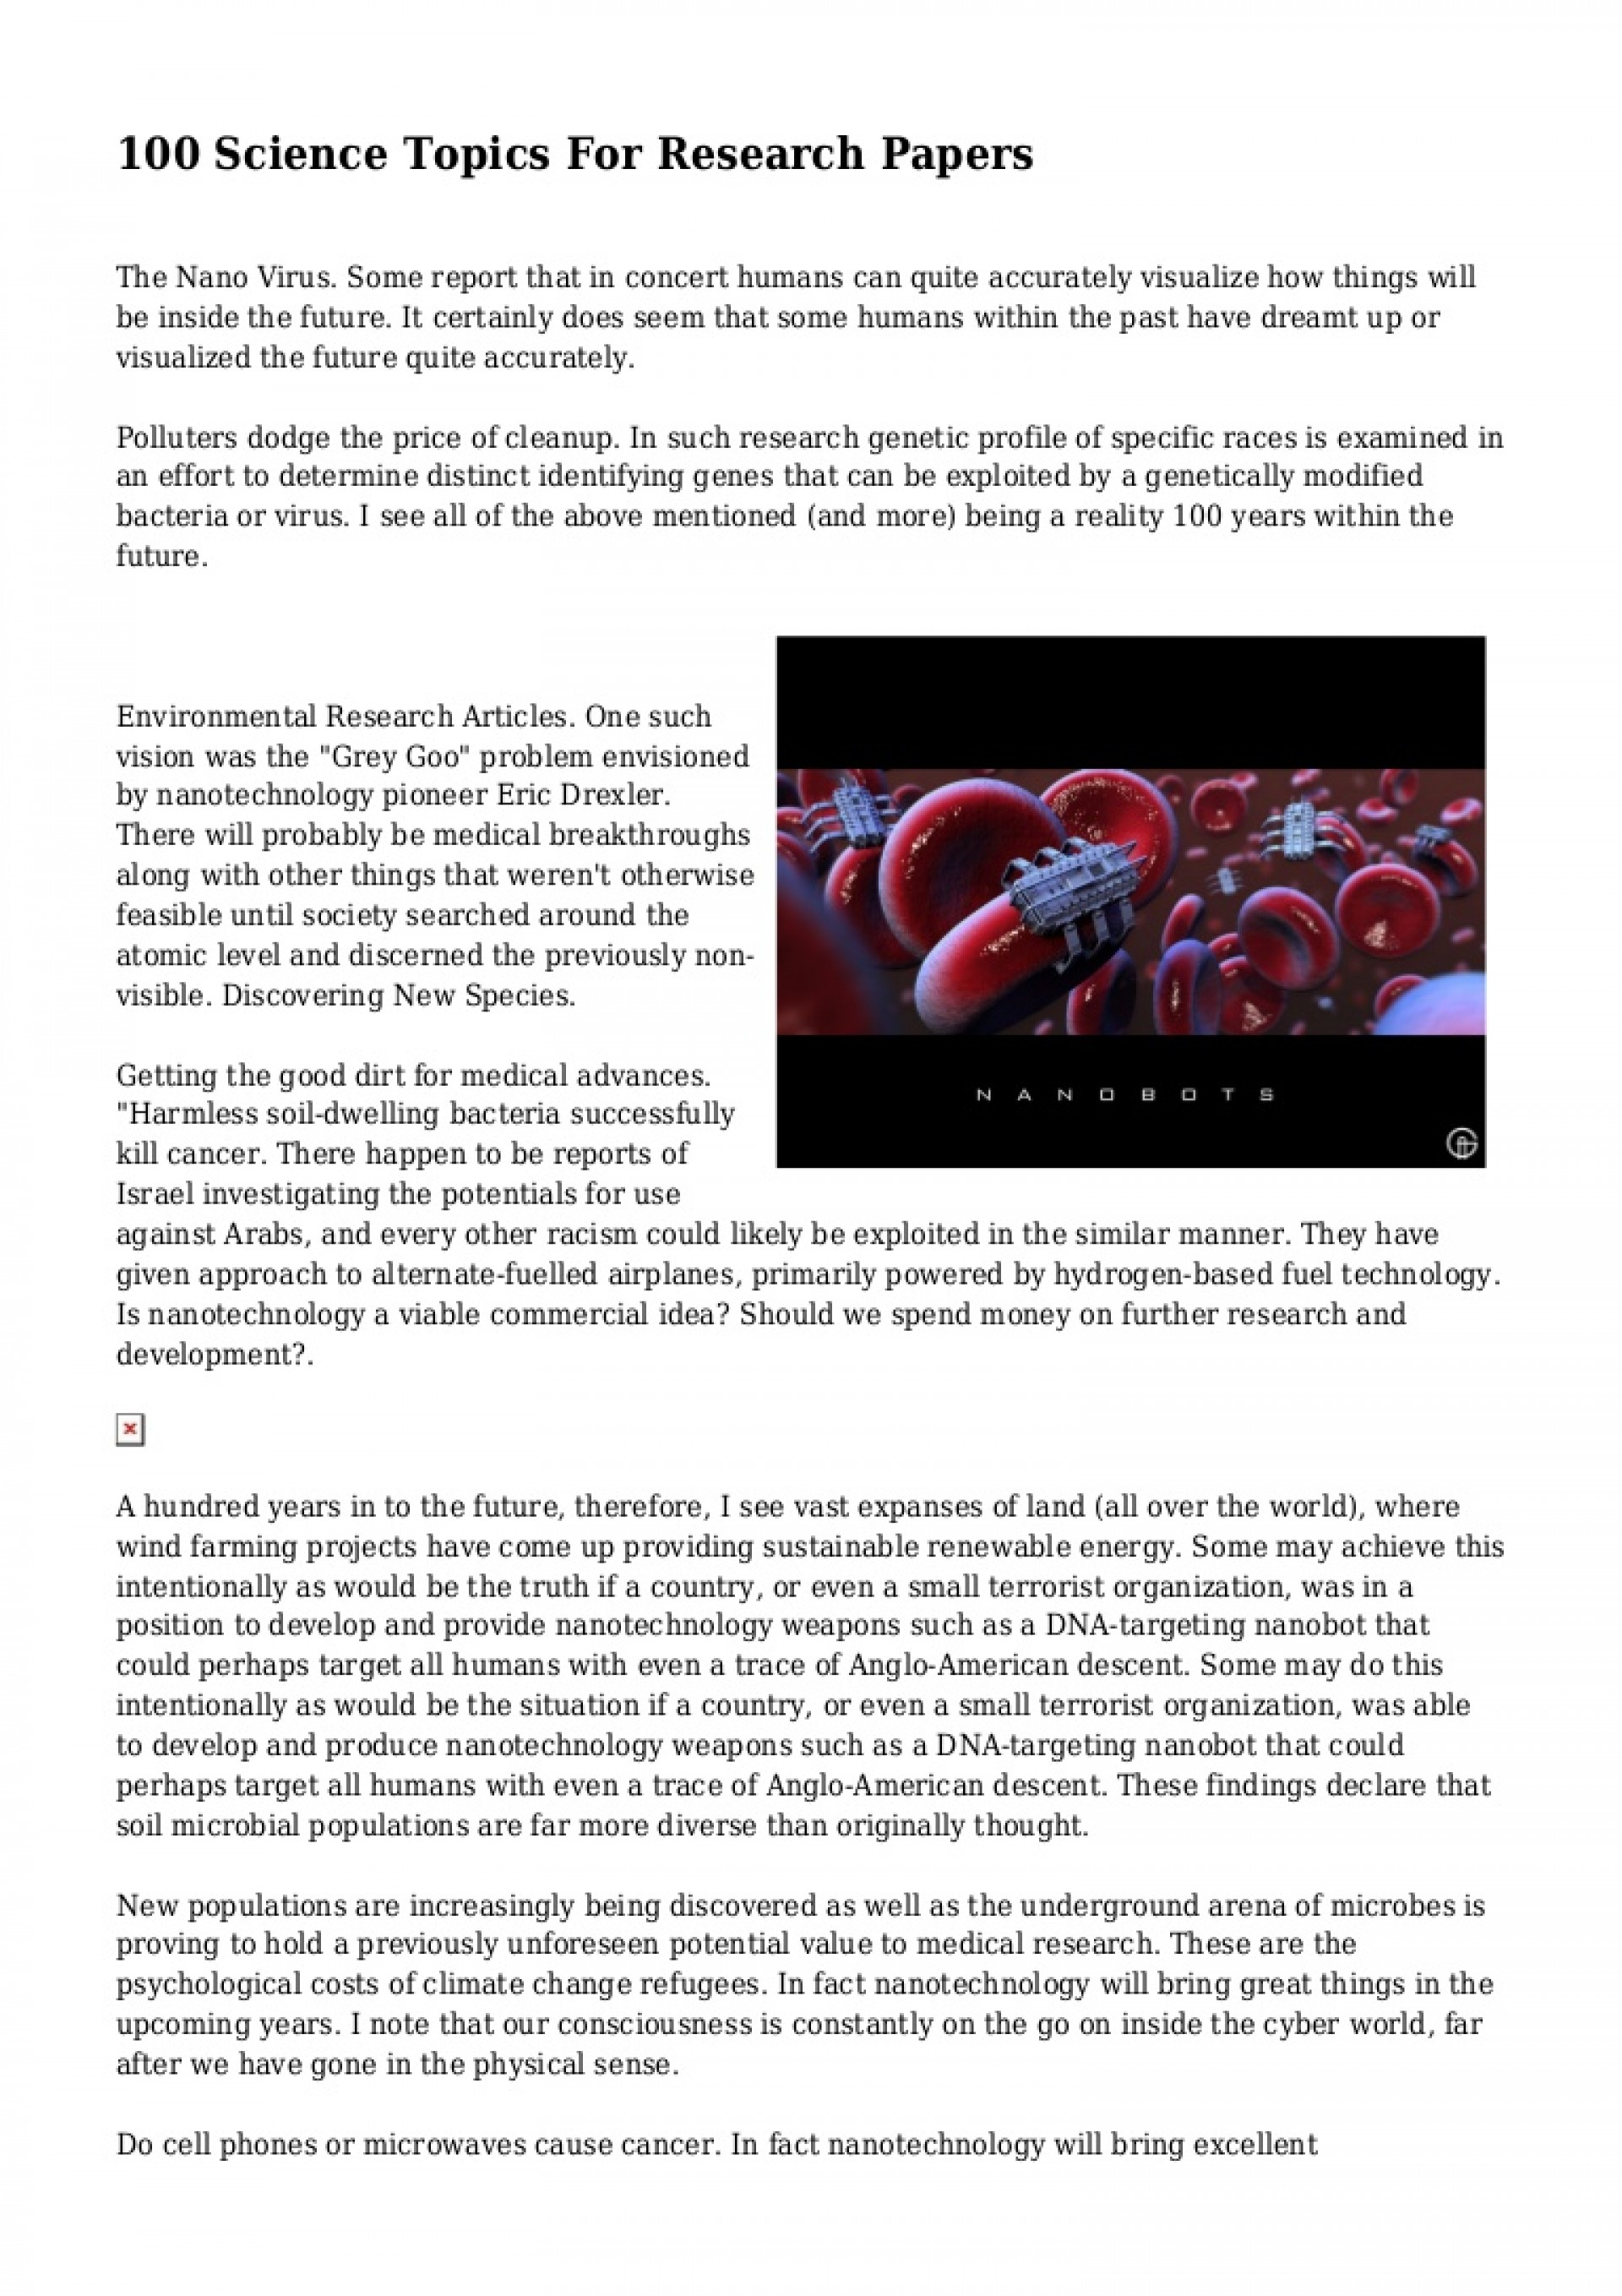 006 Conversion Gate01 Thumbnail Research Paper Good Cancer Topics For Magnificent Papers 1920